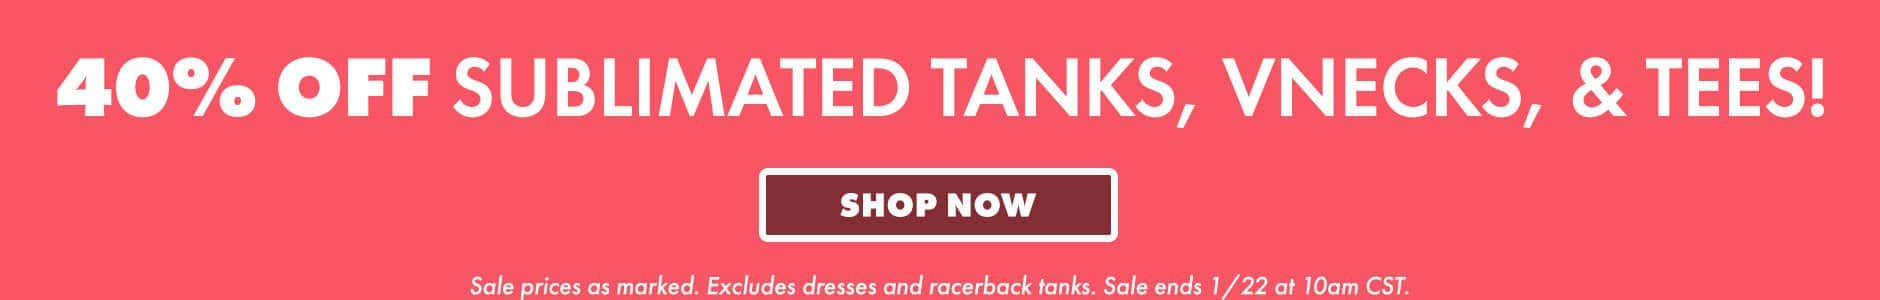 40% off sublimated tanks, vnecks, & tees! Shop now. Sale prices as marked. Excludes dresses and racerback tanks. Sale ends 1/22 at 10am CST.